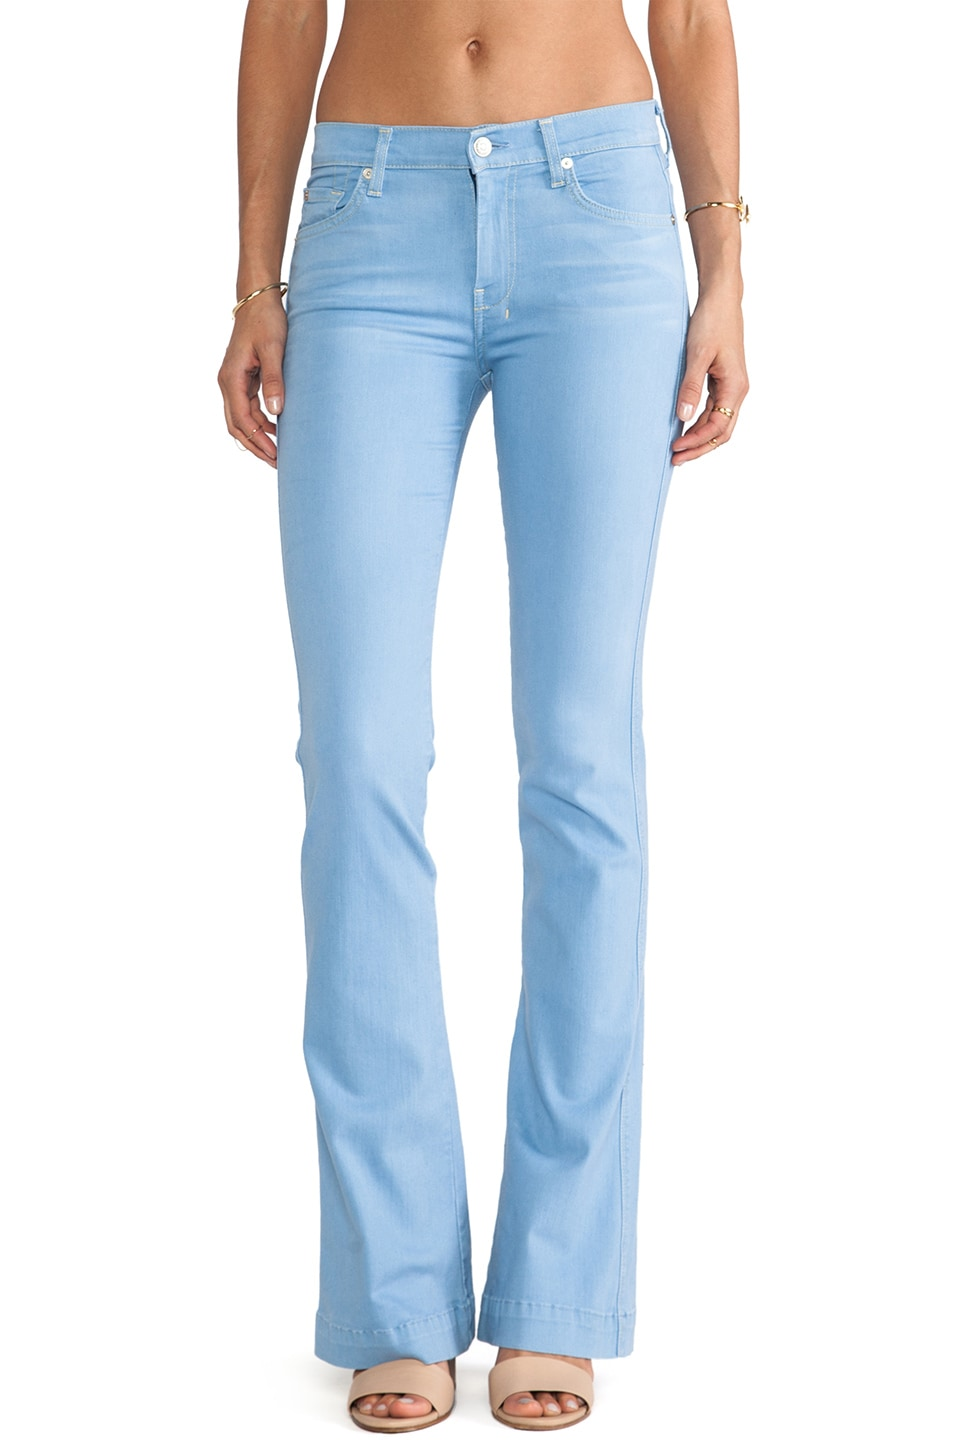 7 For All Mankind Slim Trouser in Light Weight Blue Denim